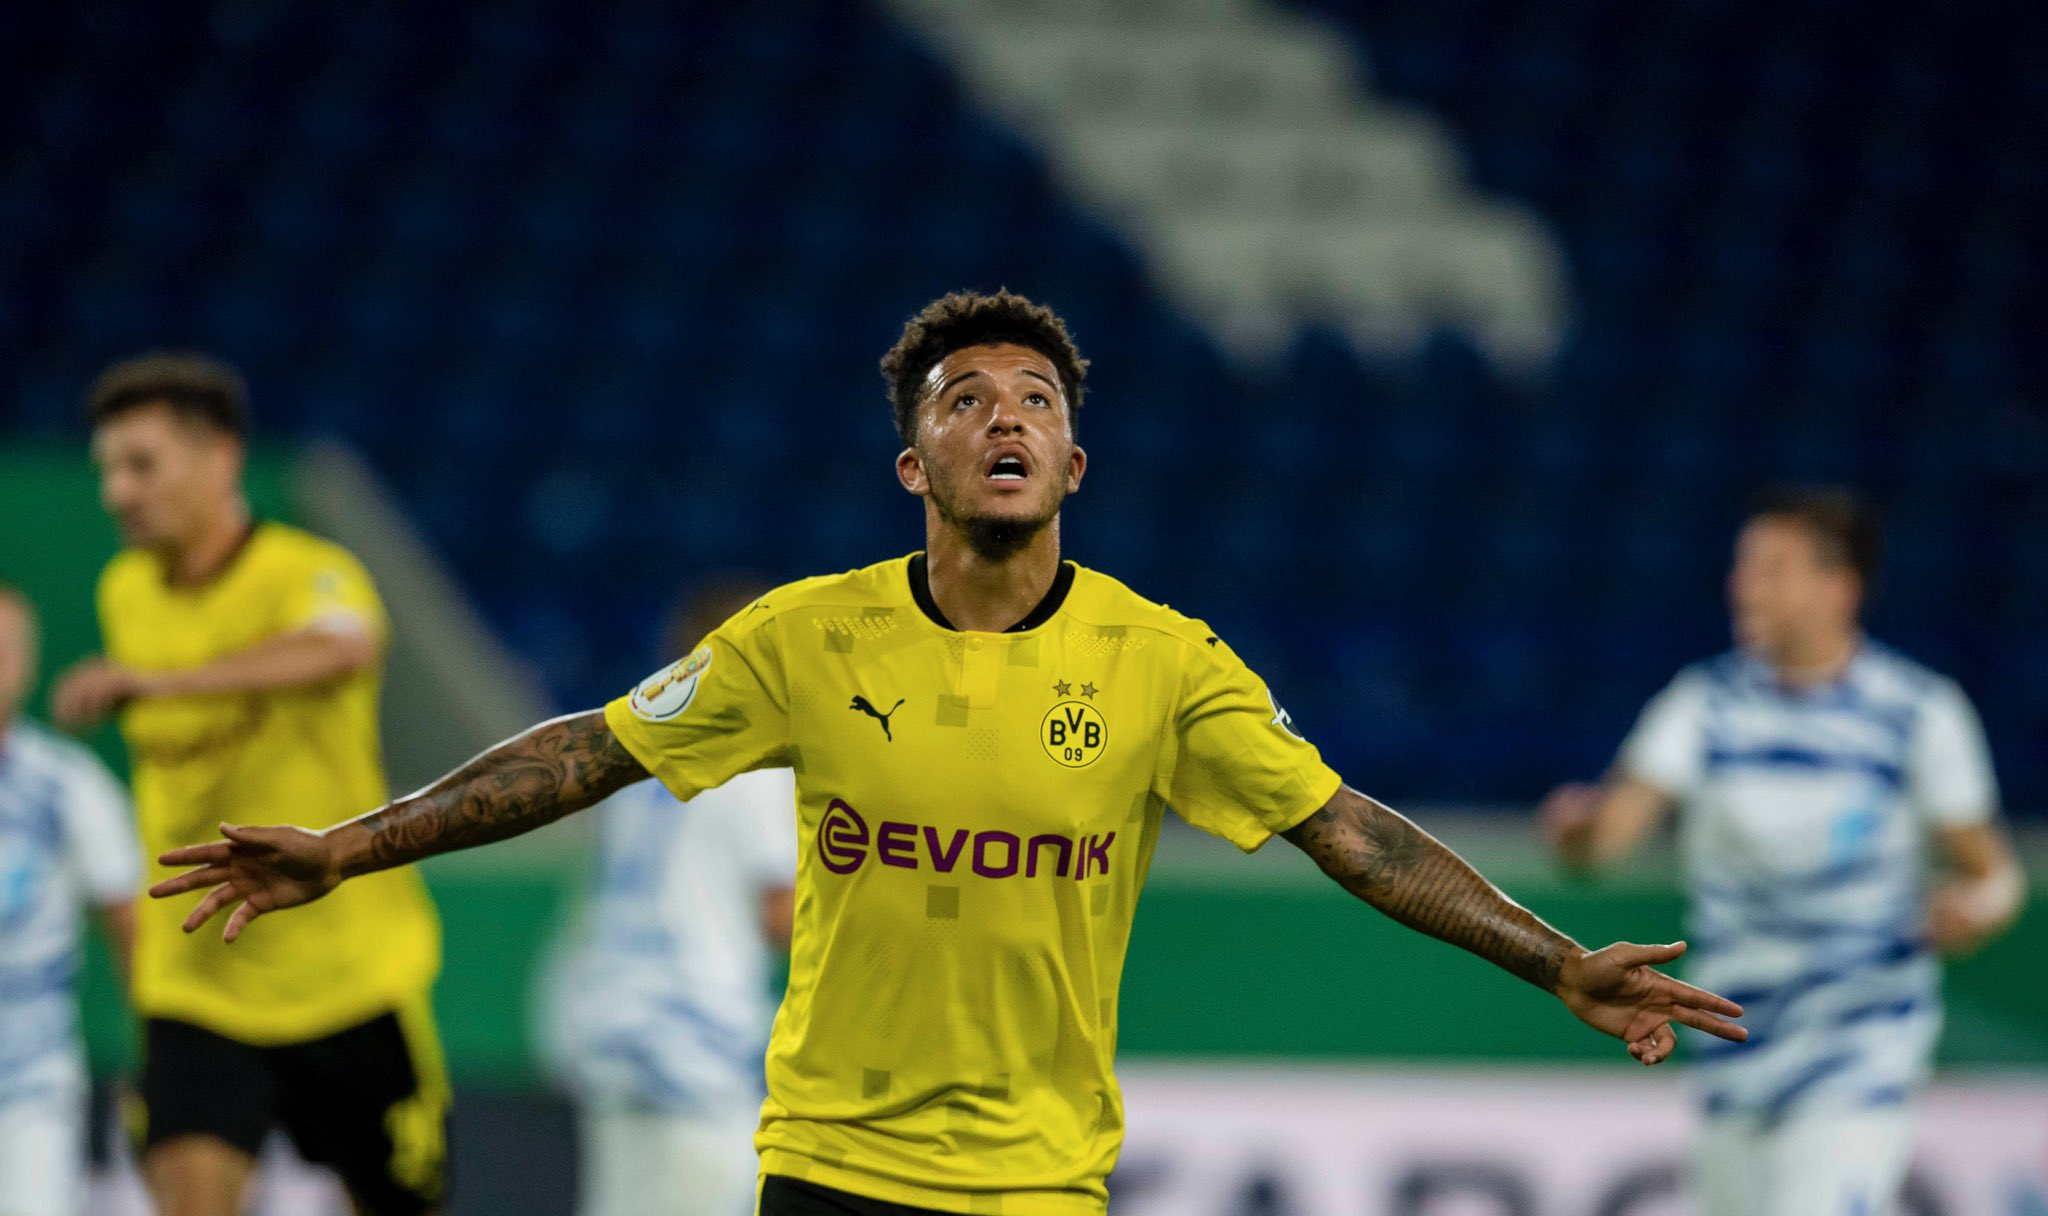 Jadon Sancho is linked with a move to Manchester United.